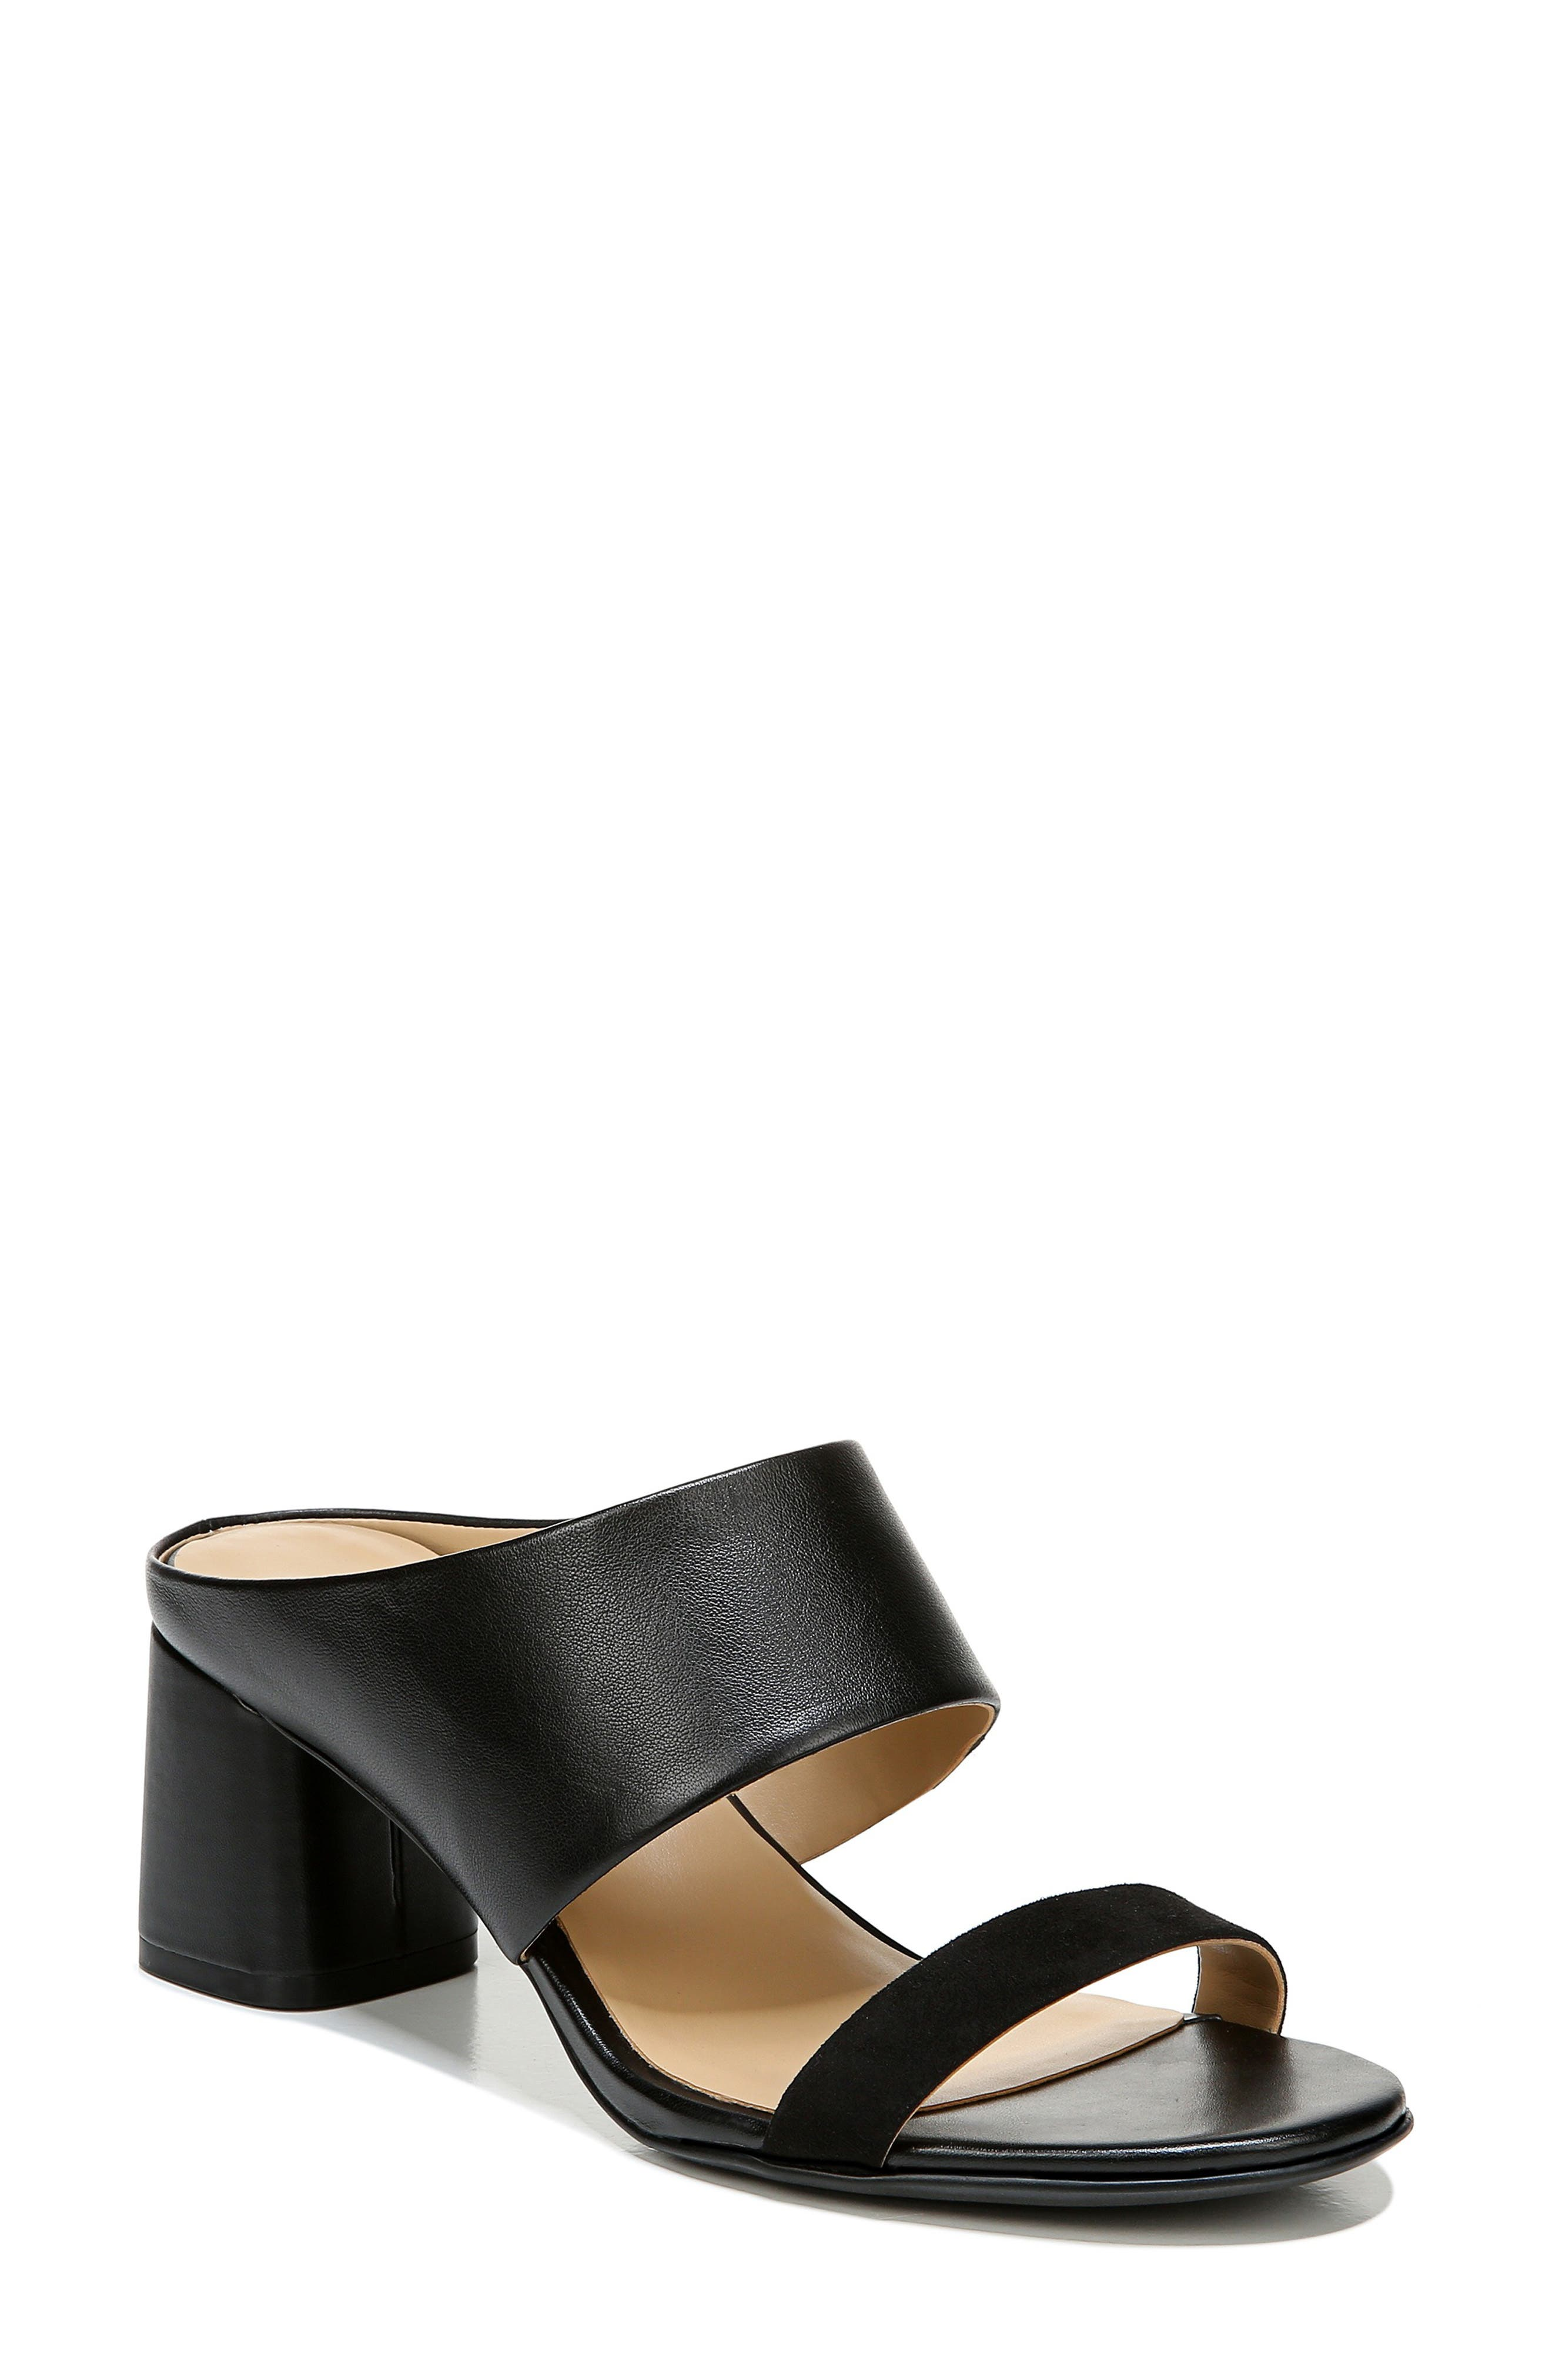 An architectural heel lifts a sleek slide designed with Naturalizer\\\'s signature cushioned footbed for endless support and comfort. Style Name: Naturalizer Abbey Slide Sandal (Women). Style Number: 6015138. Available in stores.